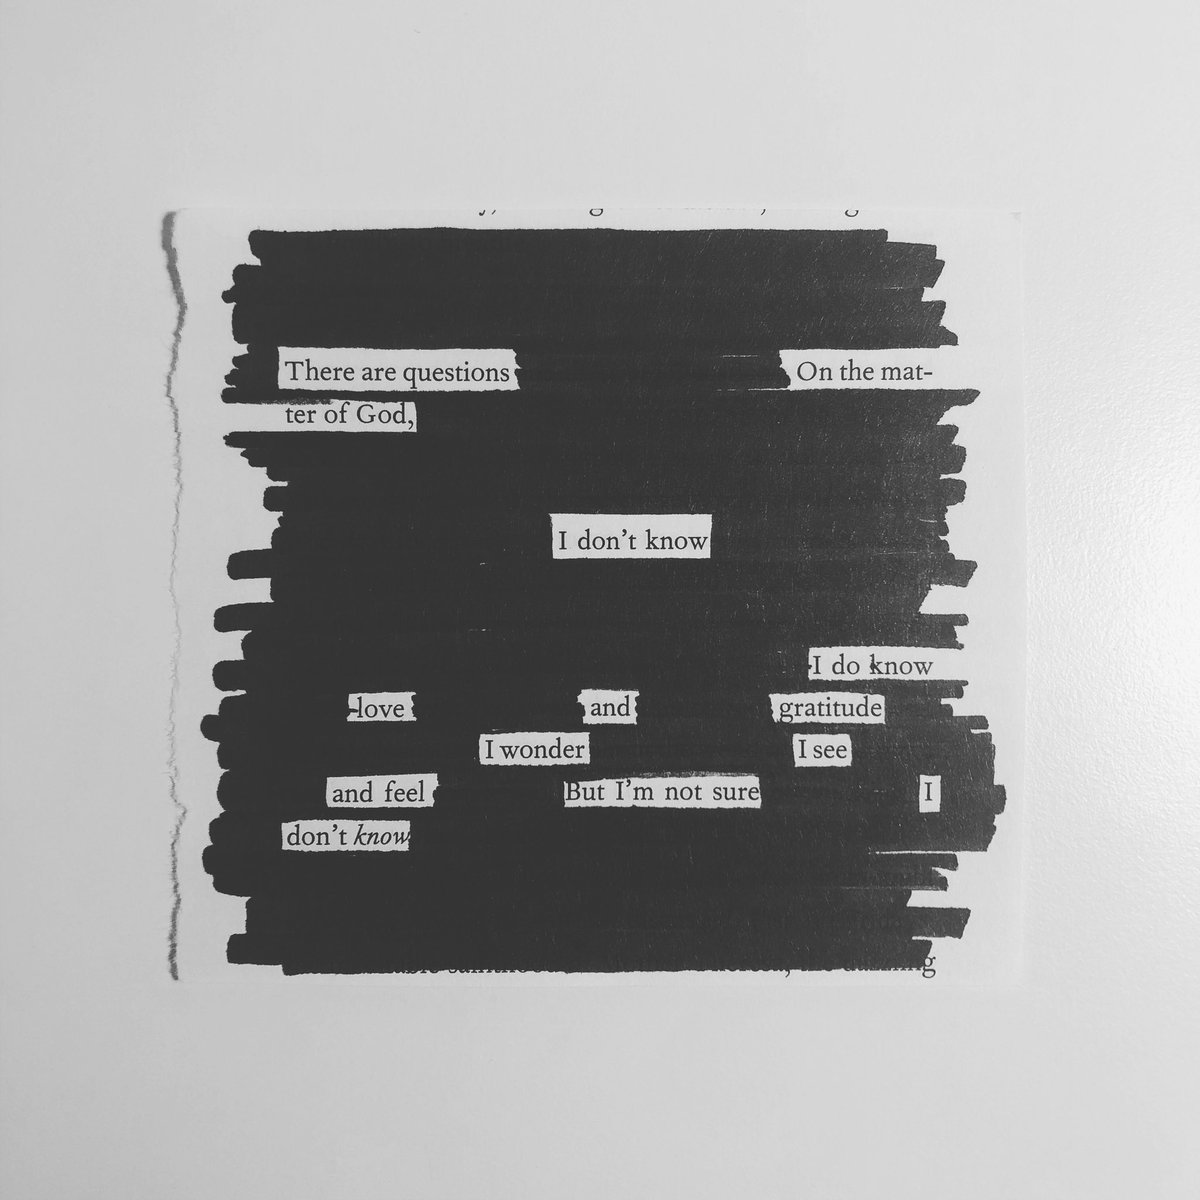 There are questions On the matter of God, I don't know I do know love and gratitude I wonder I see and feel But I'm not sure I don't know  #blackoutpoetry #blackoutpoem #questions #god #idontknow #uncertainty #love #gratitude #wonder #see #feel #know #reality #quarantineart https://t.co/7RLCL13Y5T